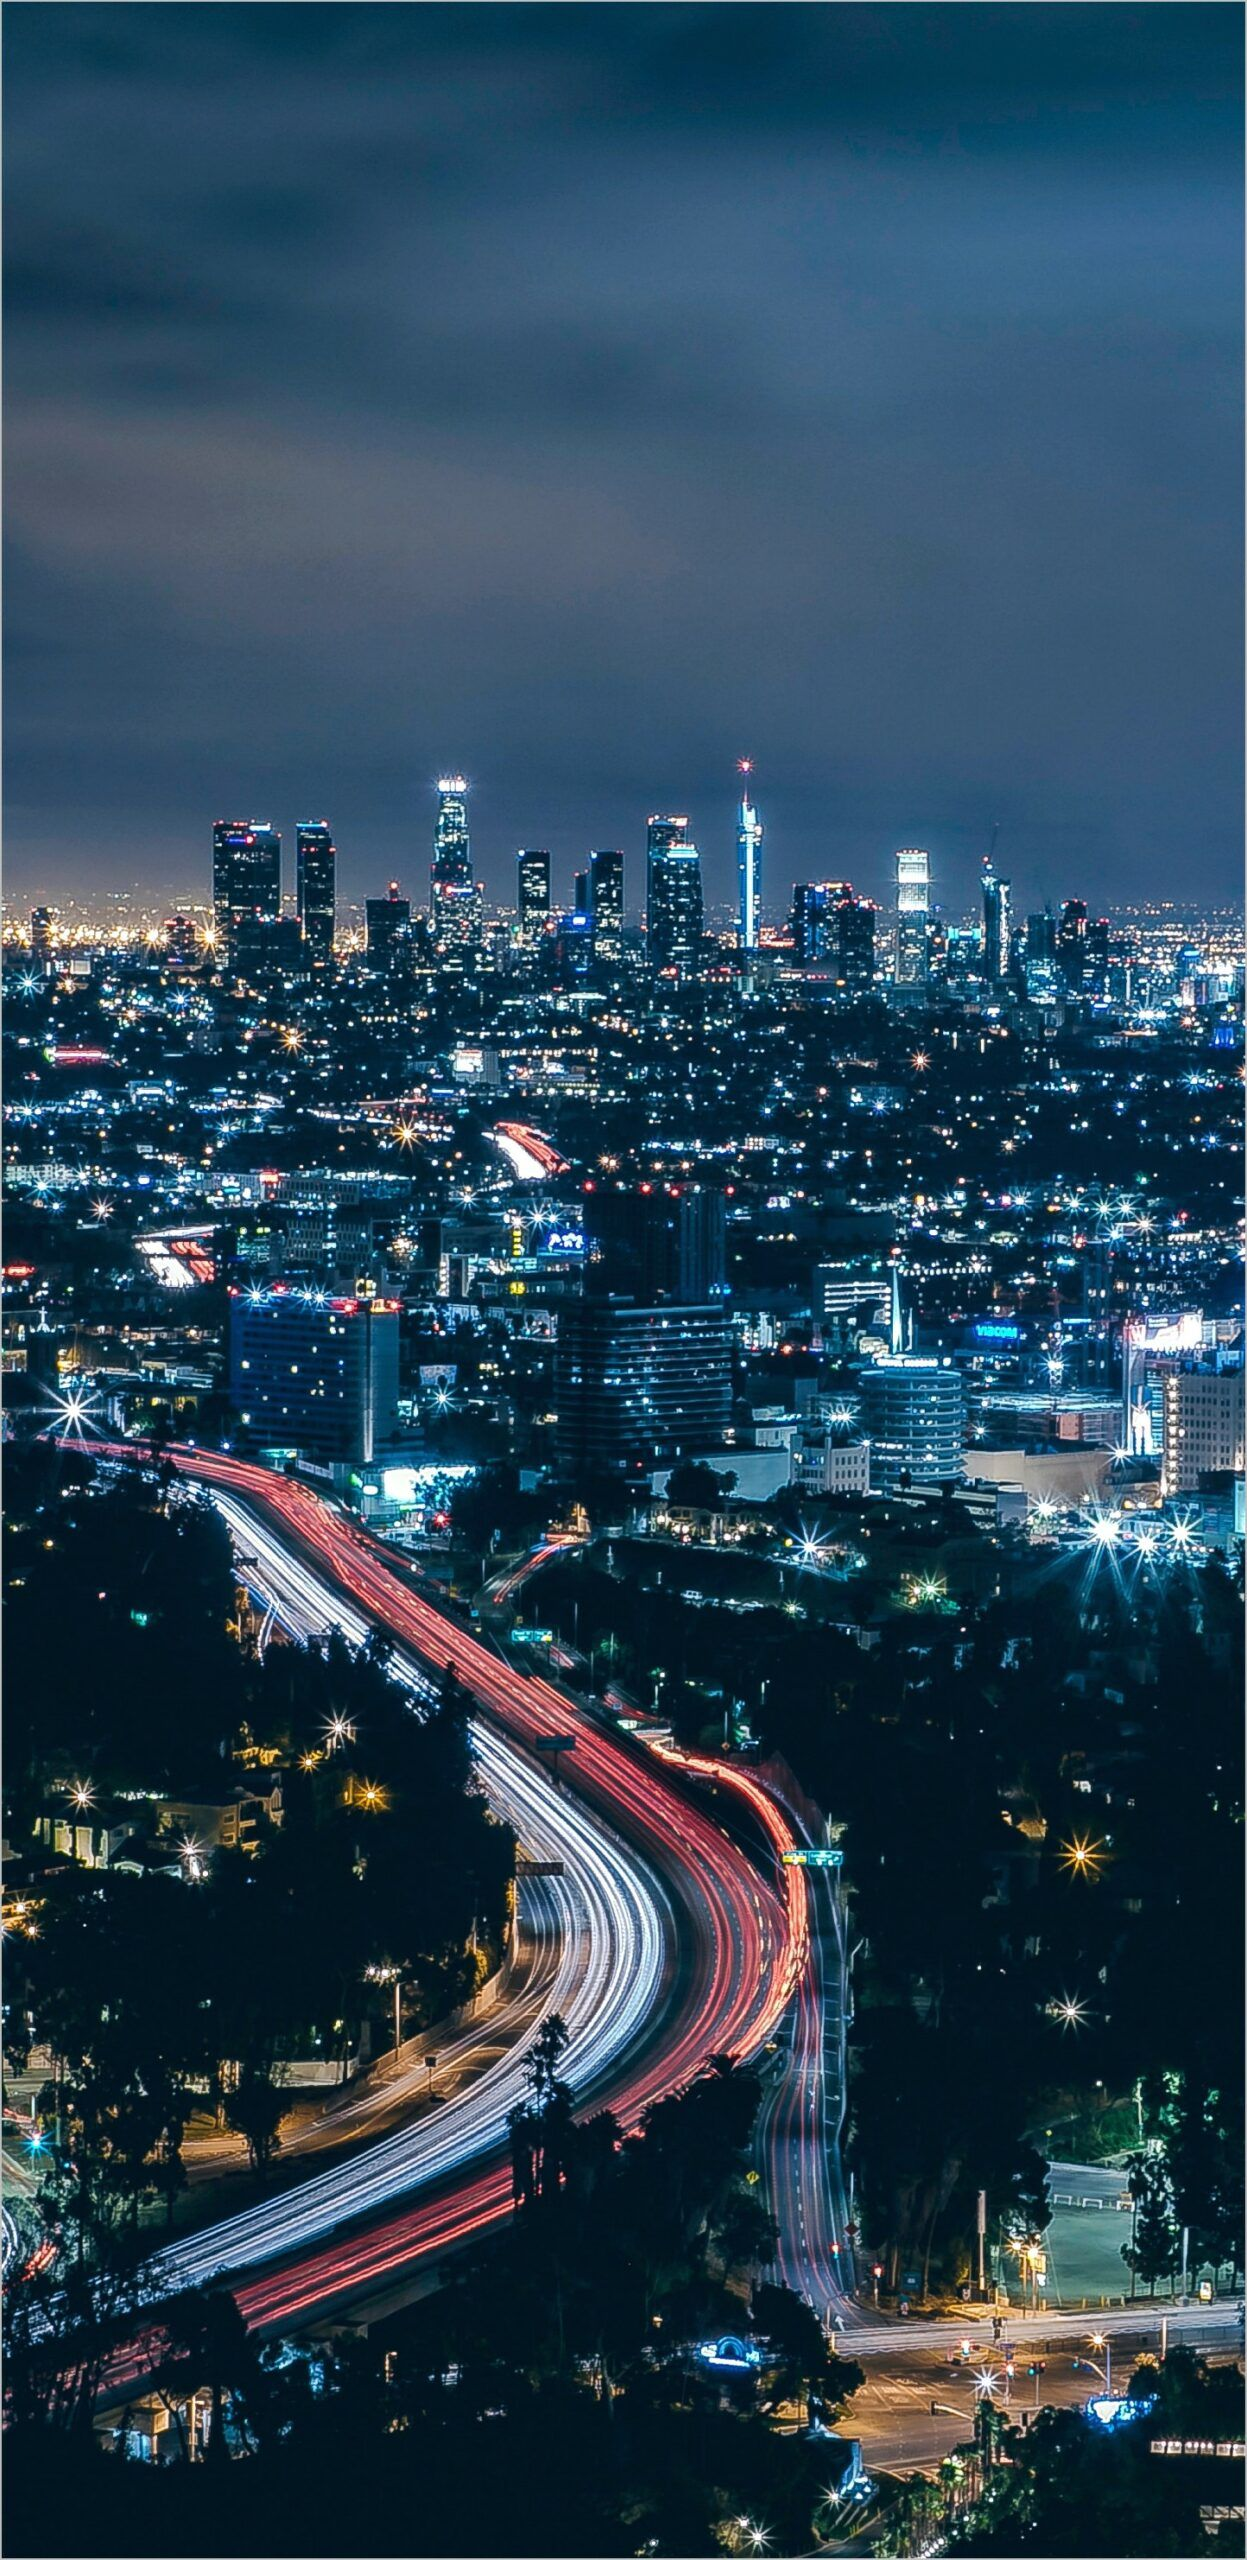 Samsung Galaxy S8 Edge 4k Wallpapers In 2020 City Aesthetic Los Angeles Wallpaper City Wallpaper